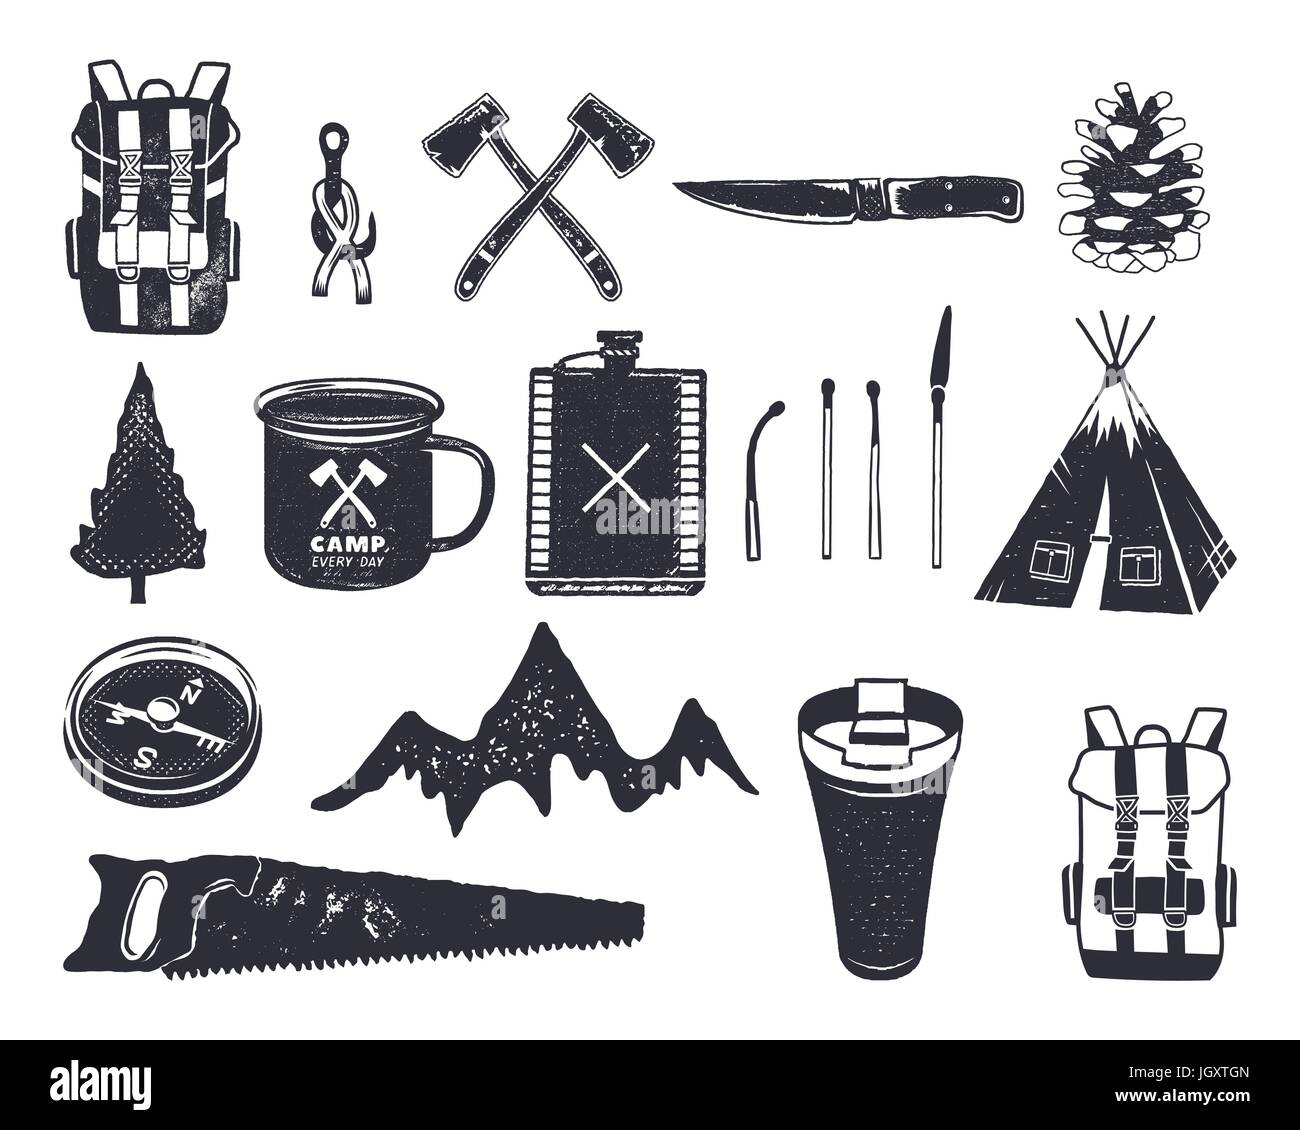 Vintage hand drawn adventure hiking, camping shapes of backpack, saw, mountain, matches, tree, knife, thermo cup - Stock Vector